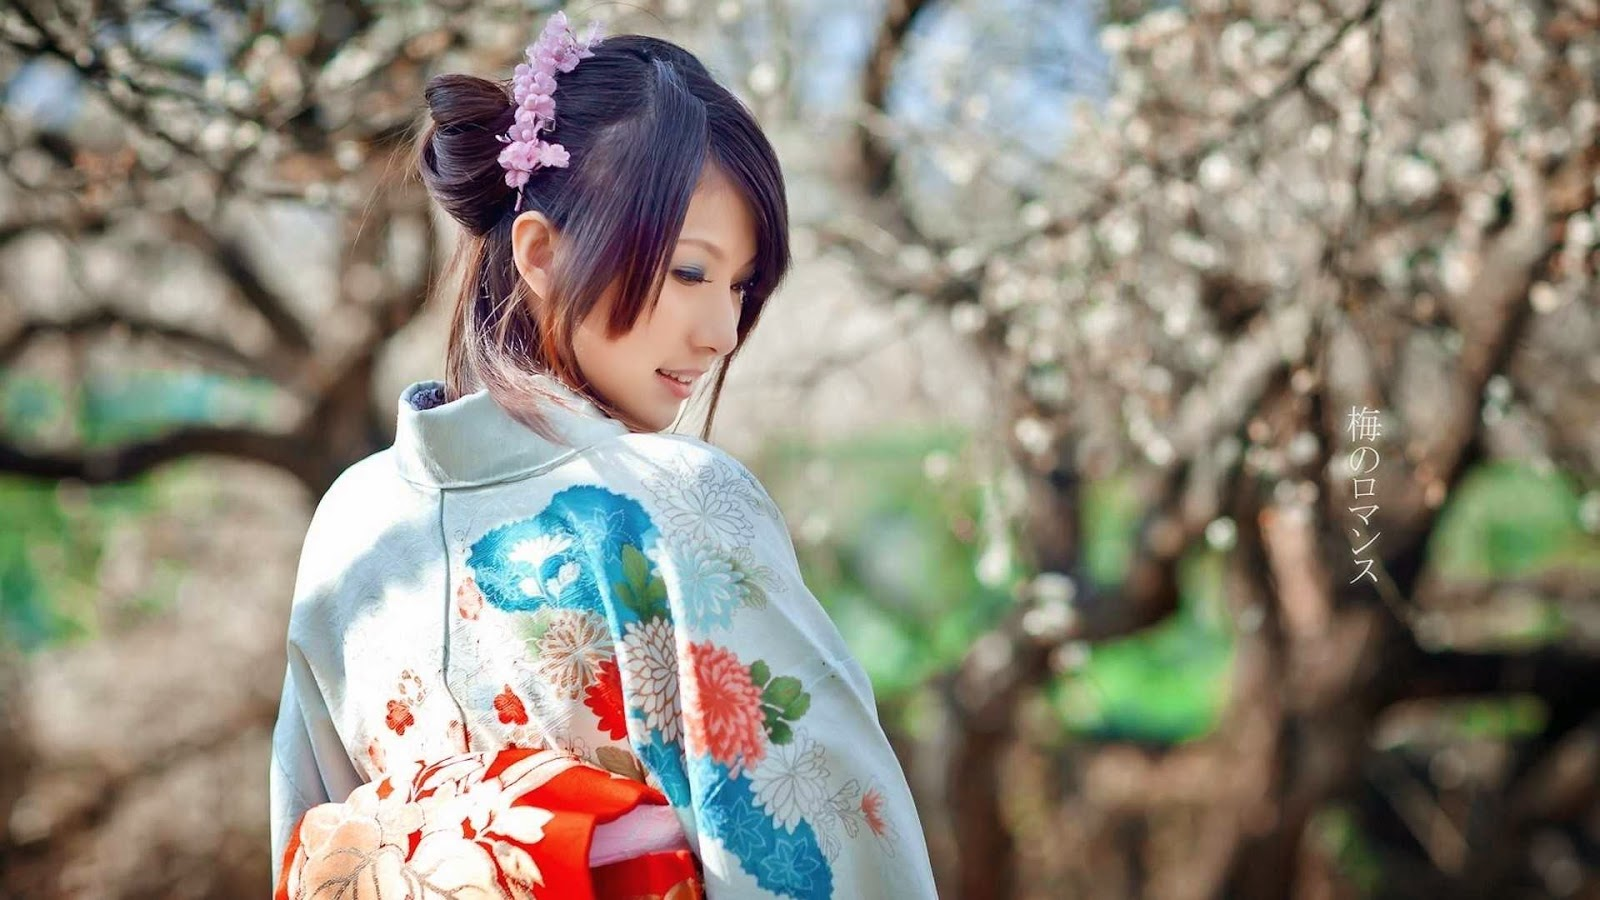 Japanese Girls Wallpapers